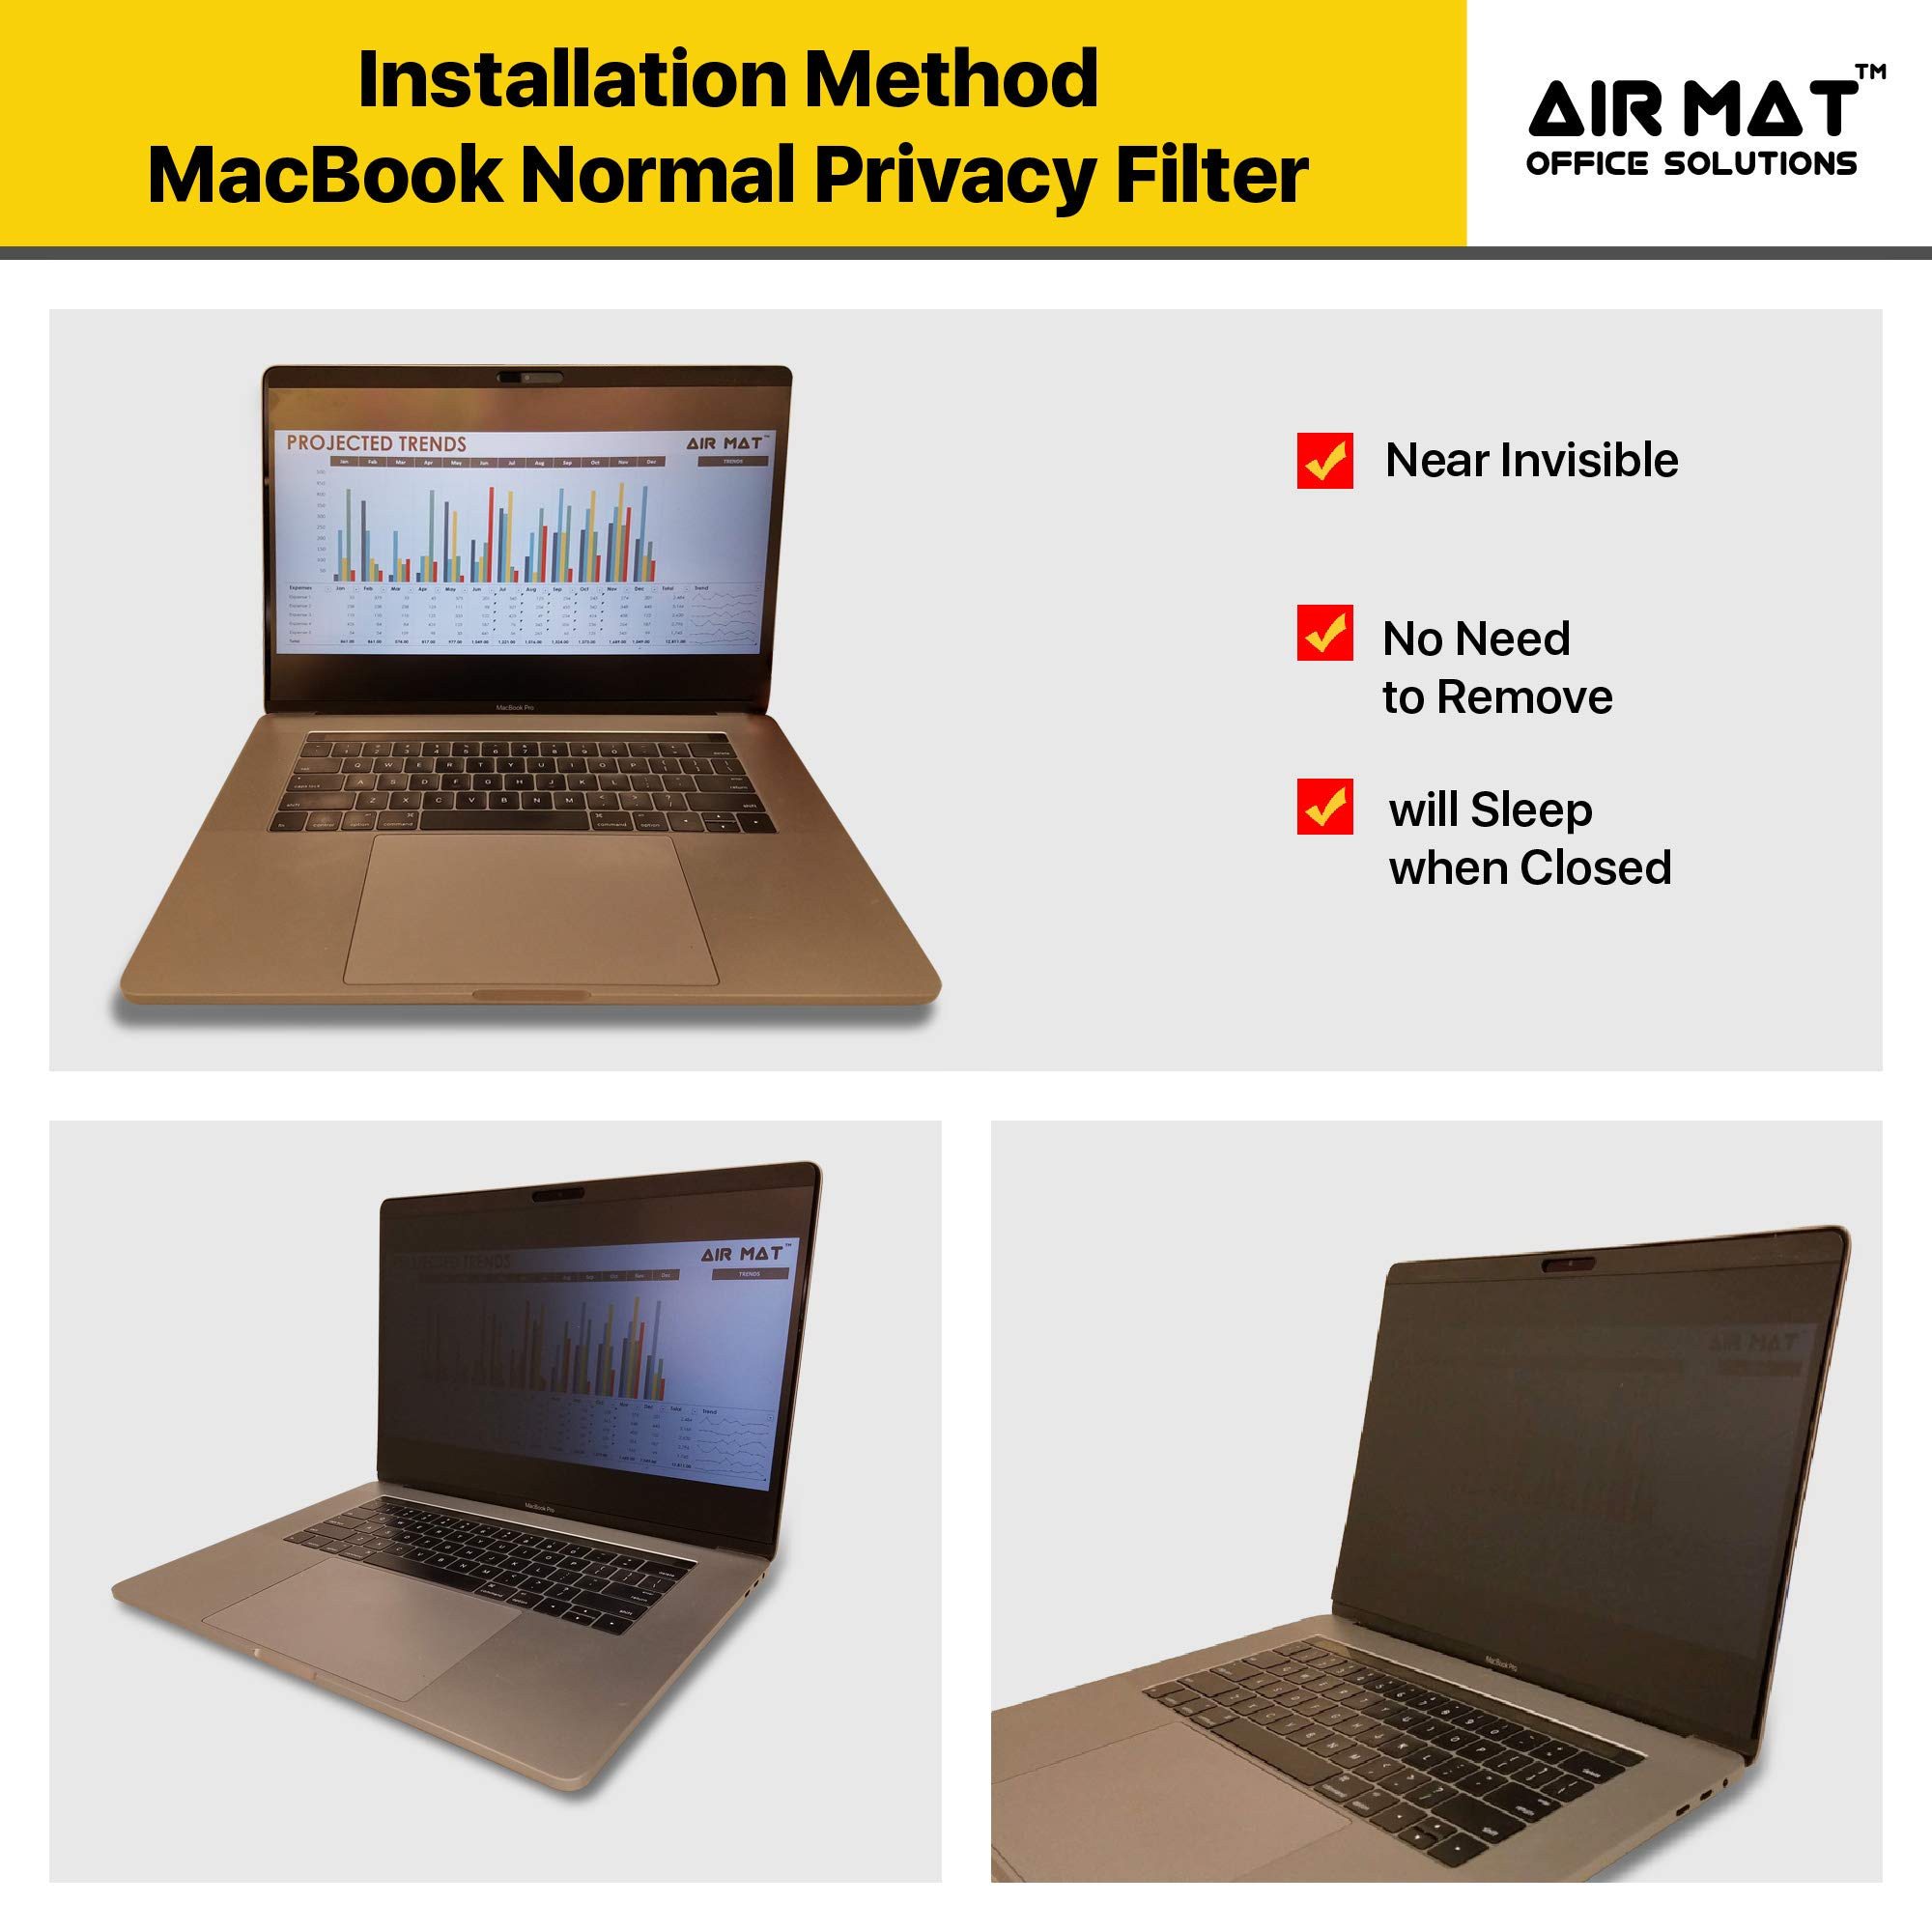 15 Inch MacBook Pro Privacy Filter with Retina Screen Display, best as removable Anti Glare Blue Light Protector Film for data confidentiality - for Apple Model A1398 (MacProR 15'') by Air Mat (Image #3)